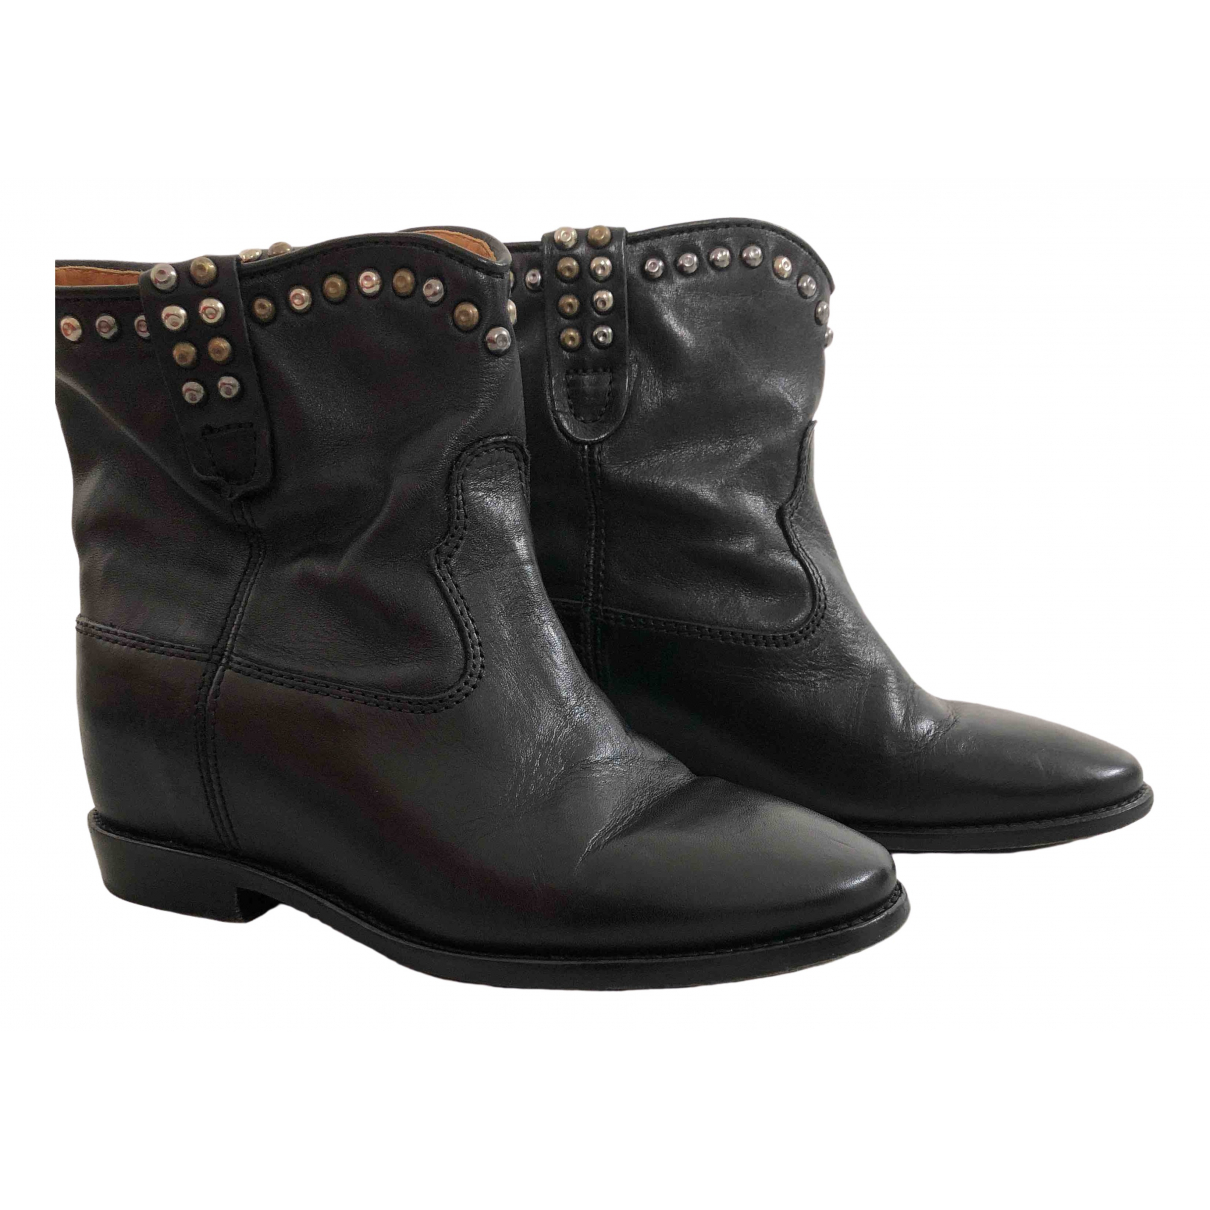 Isabel Marant Crisi  Black Leather Ankle boots for Women 36 EU